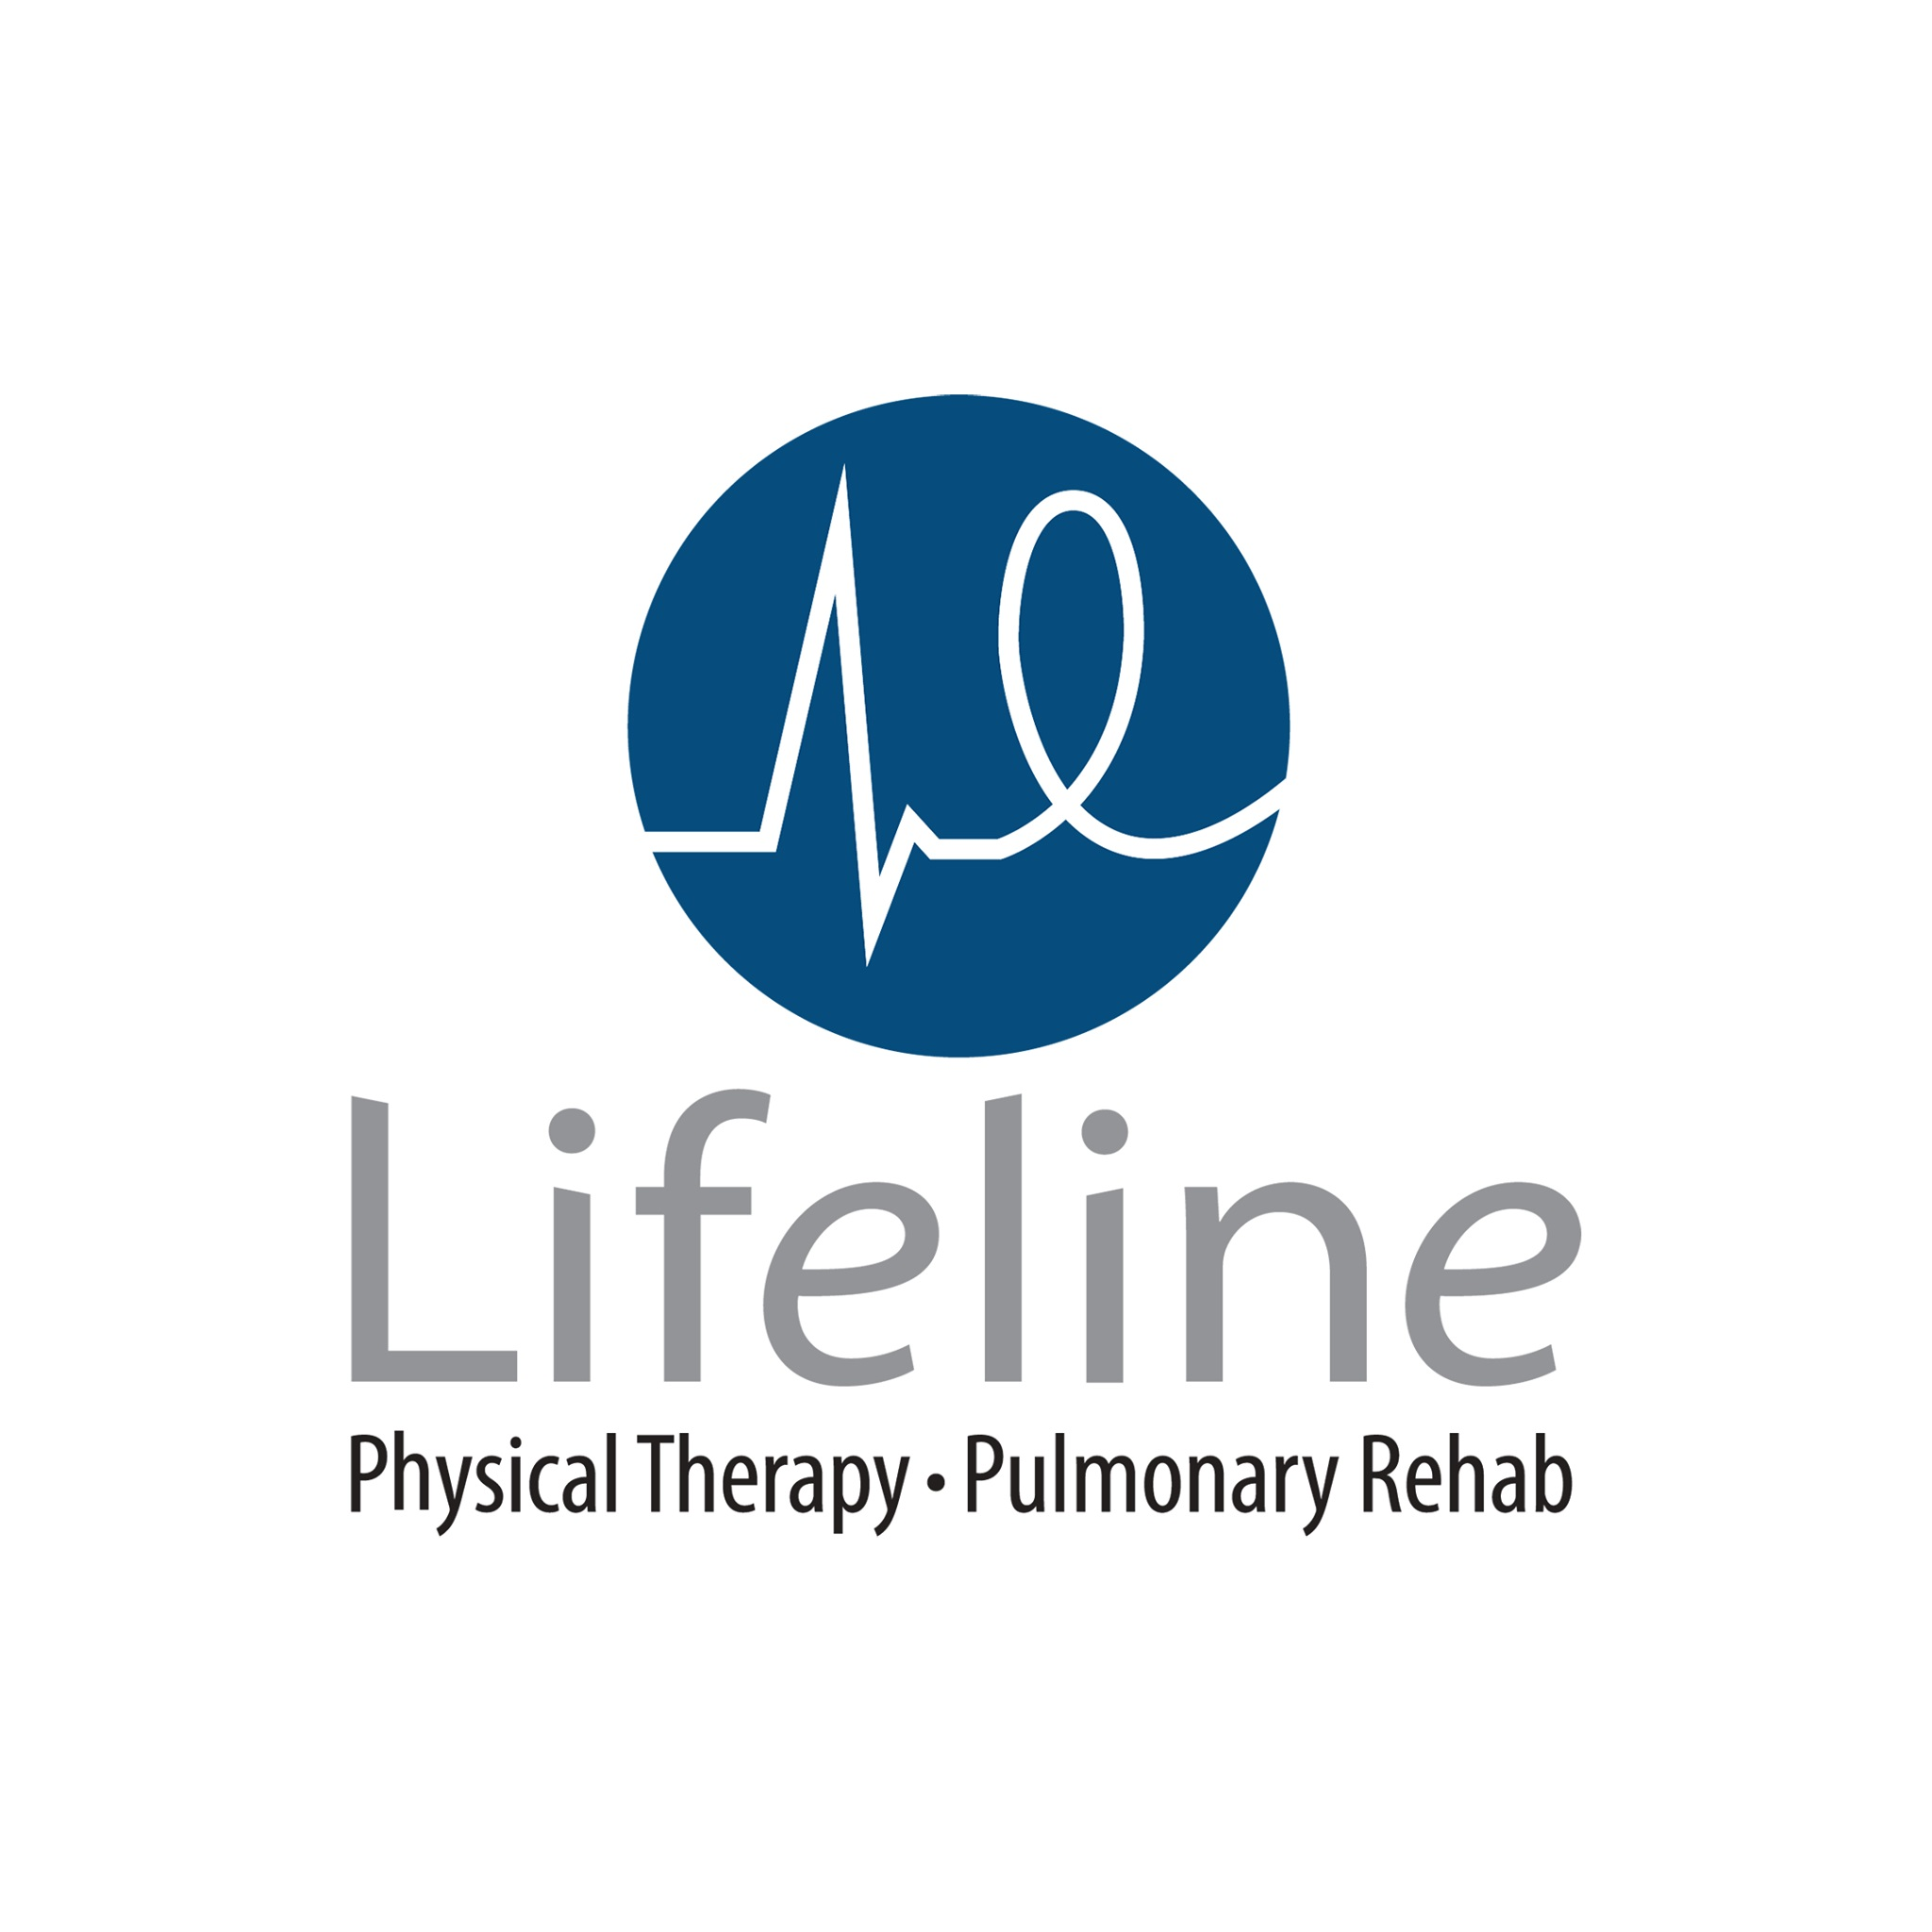 Lifeline Physical Therapy and Pulmonary Rehab - Forest Hills